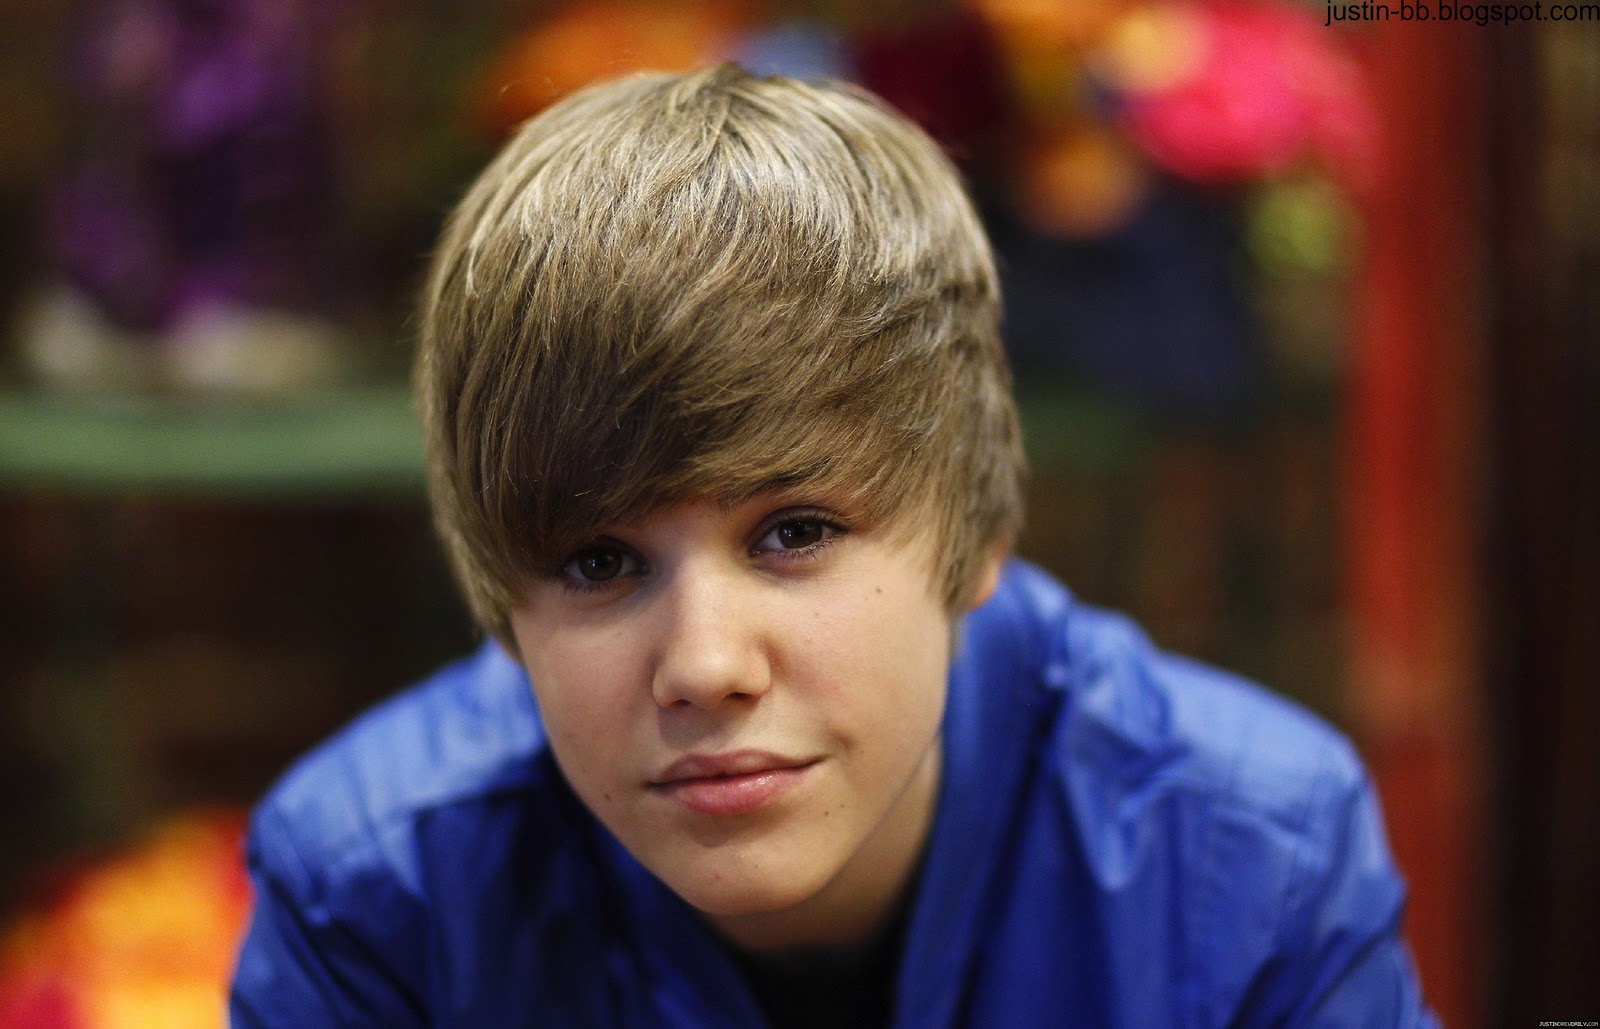 Justin Bieber: ALL ABOUT HOLLYWOOD STARS: Justin Bieber Profile And Pics